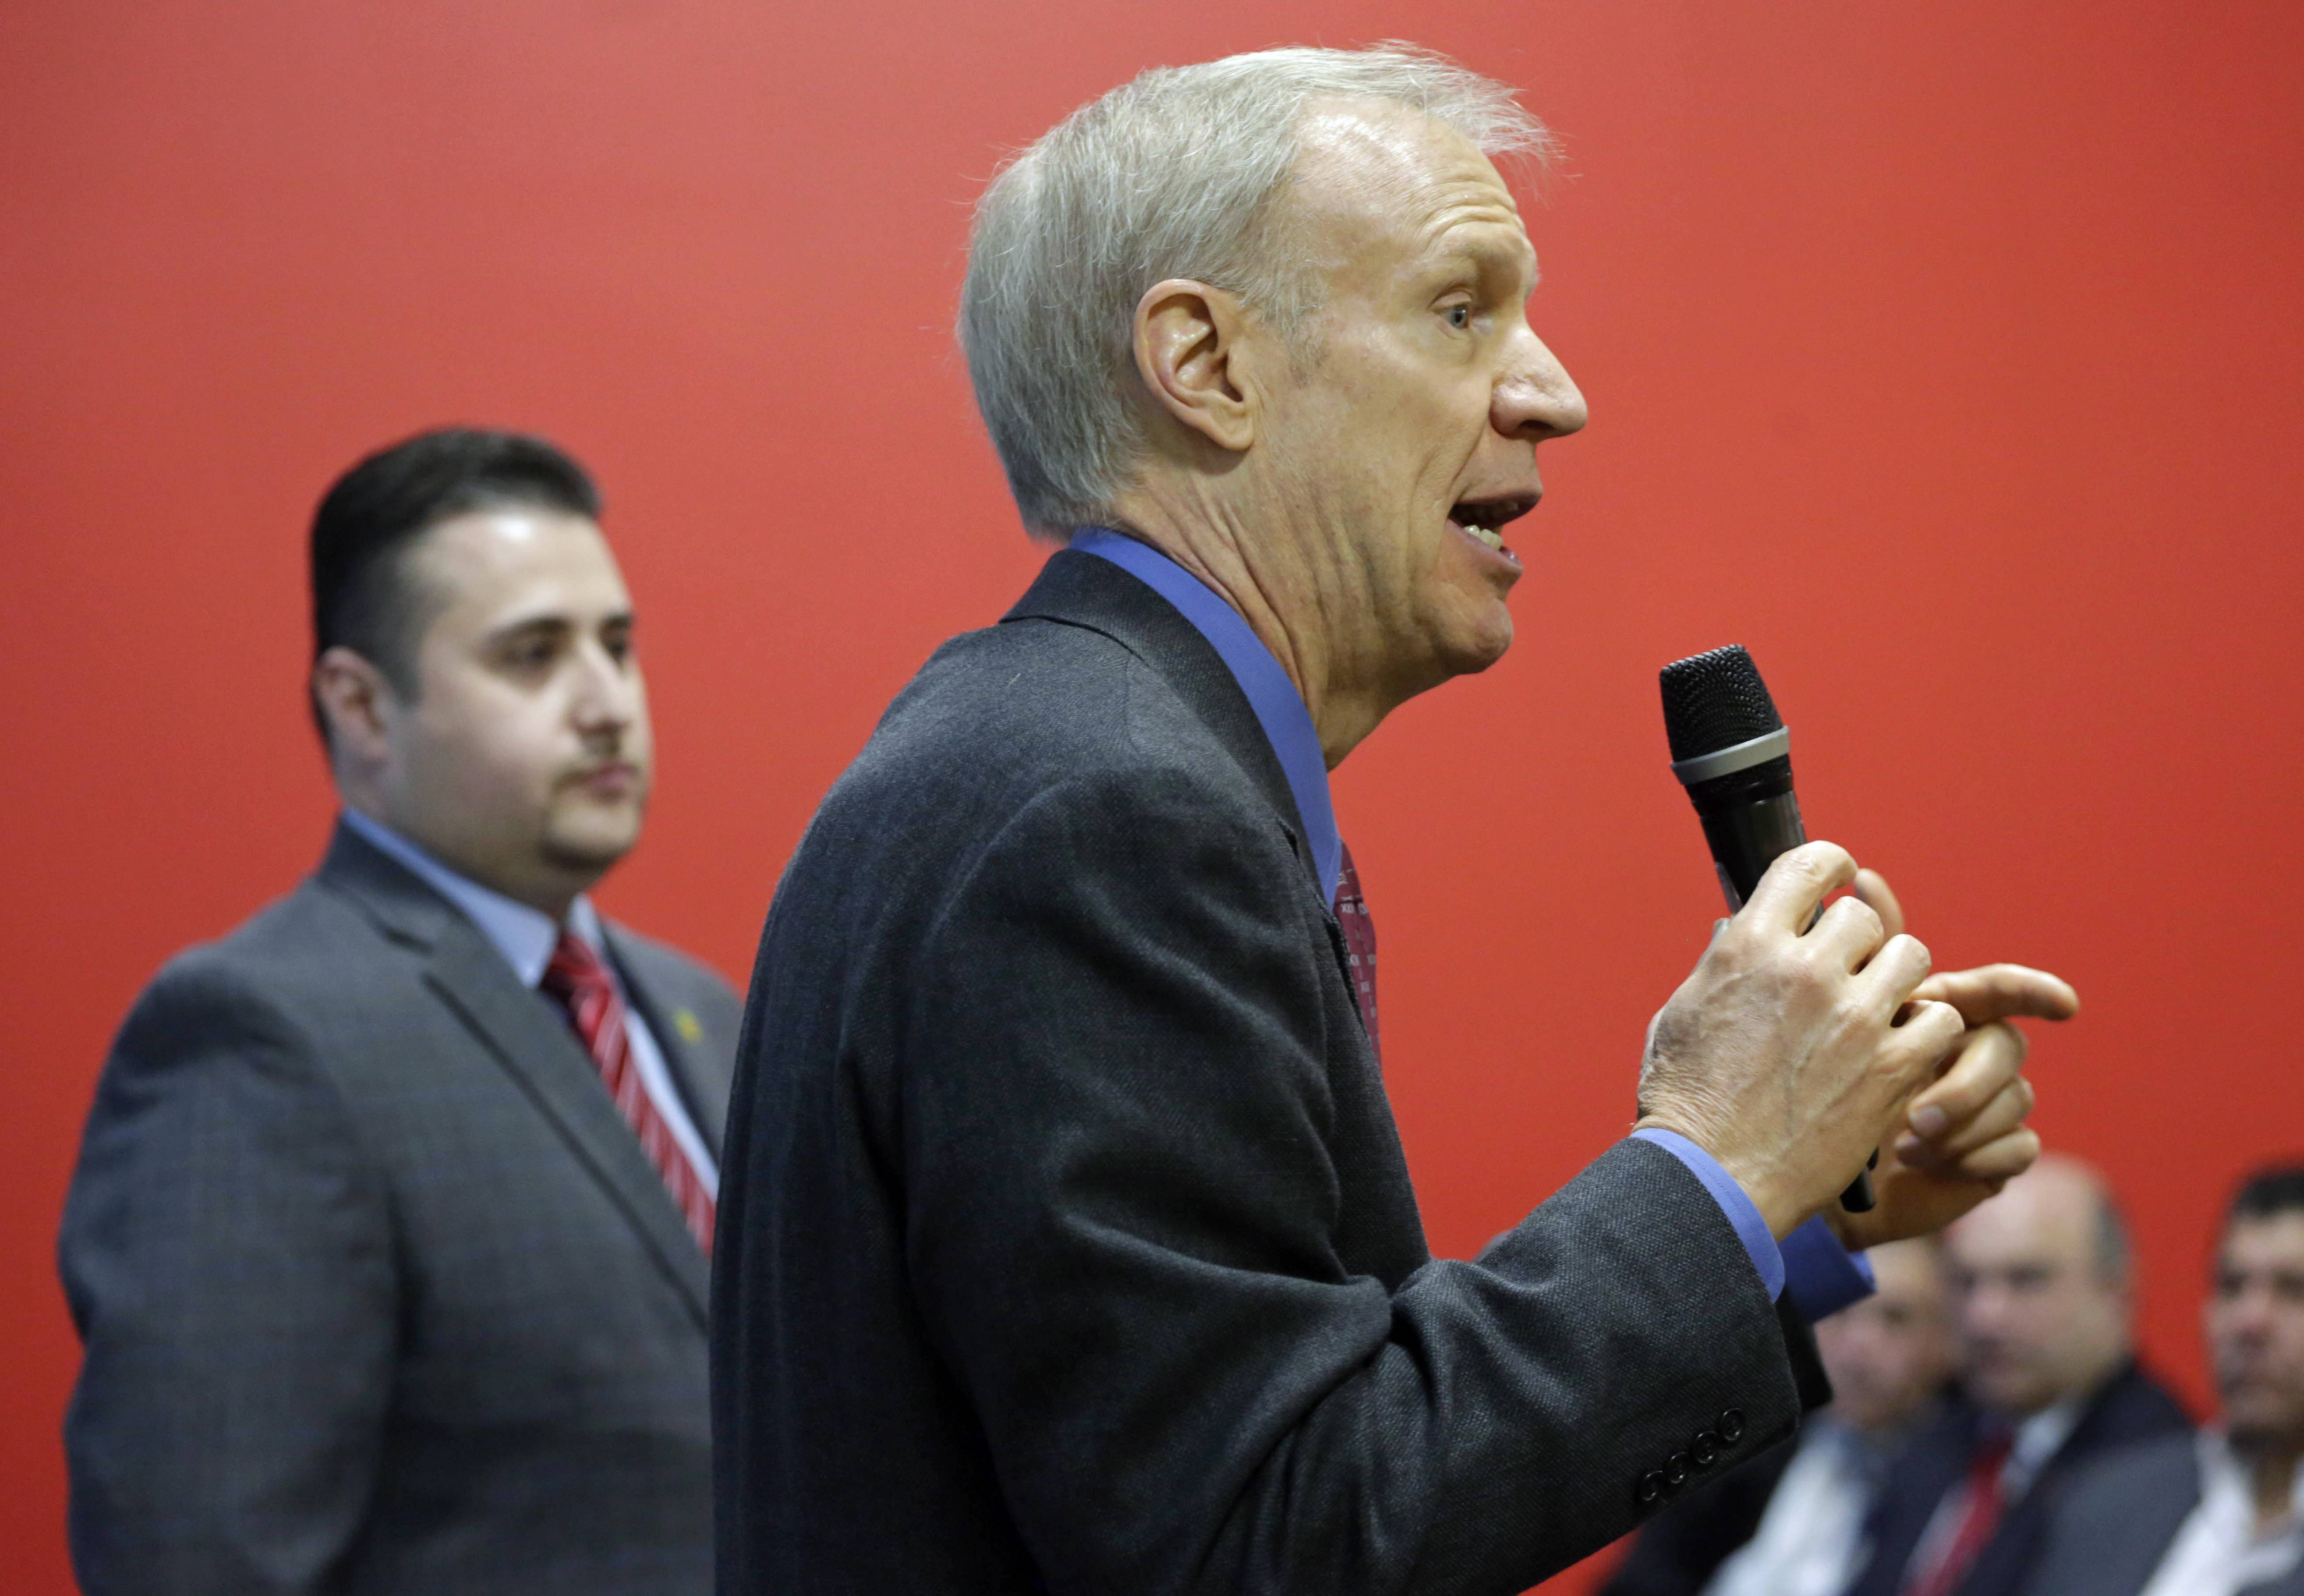 Illinois Republican Gov. Bruce Rauner speaks to business leaders in the Little Village neighborhood of Chicago. Rauner is trying to broker a master deal in the Legislature to advance some of his pro-business priorities in exchange for new revenue to save programs near and dear to Democrats.